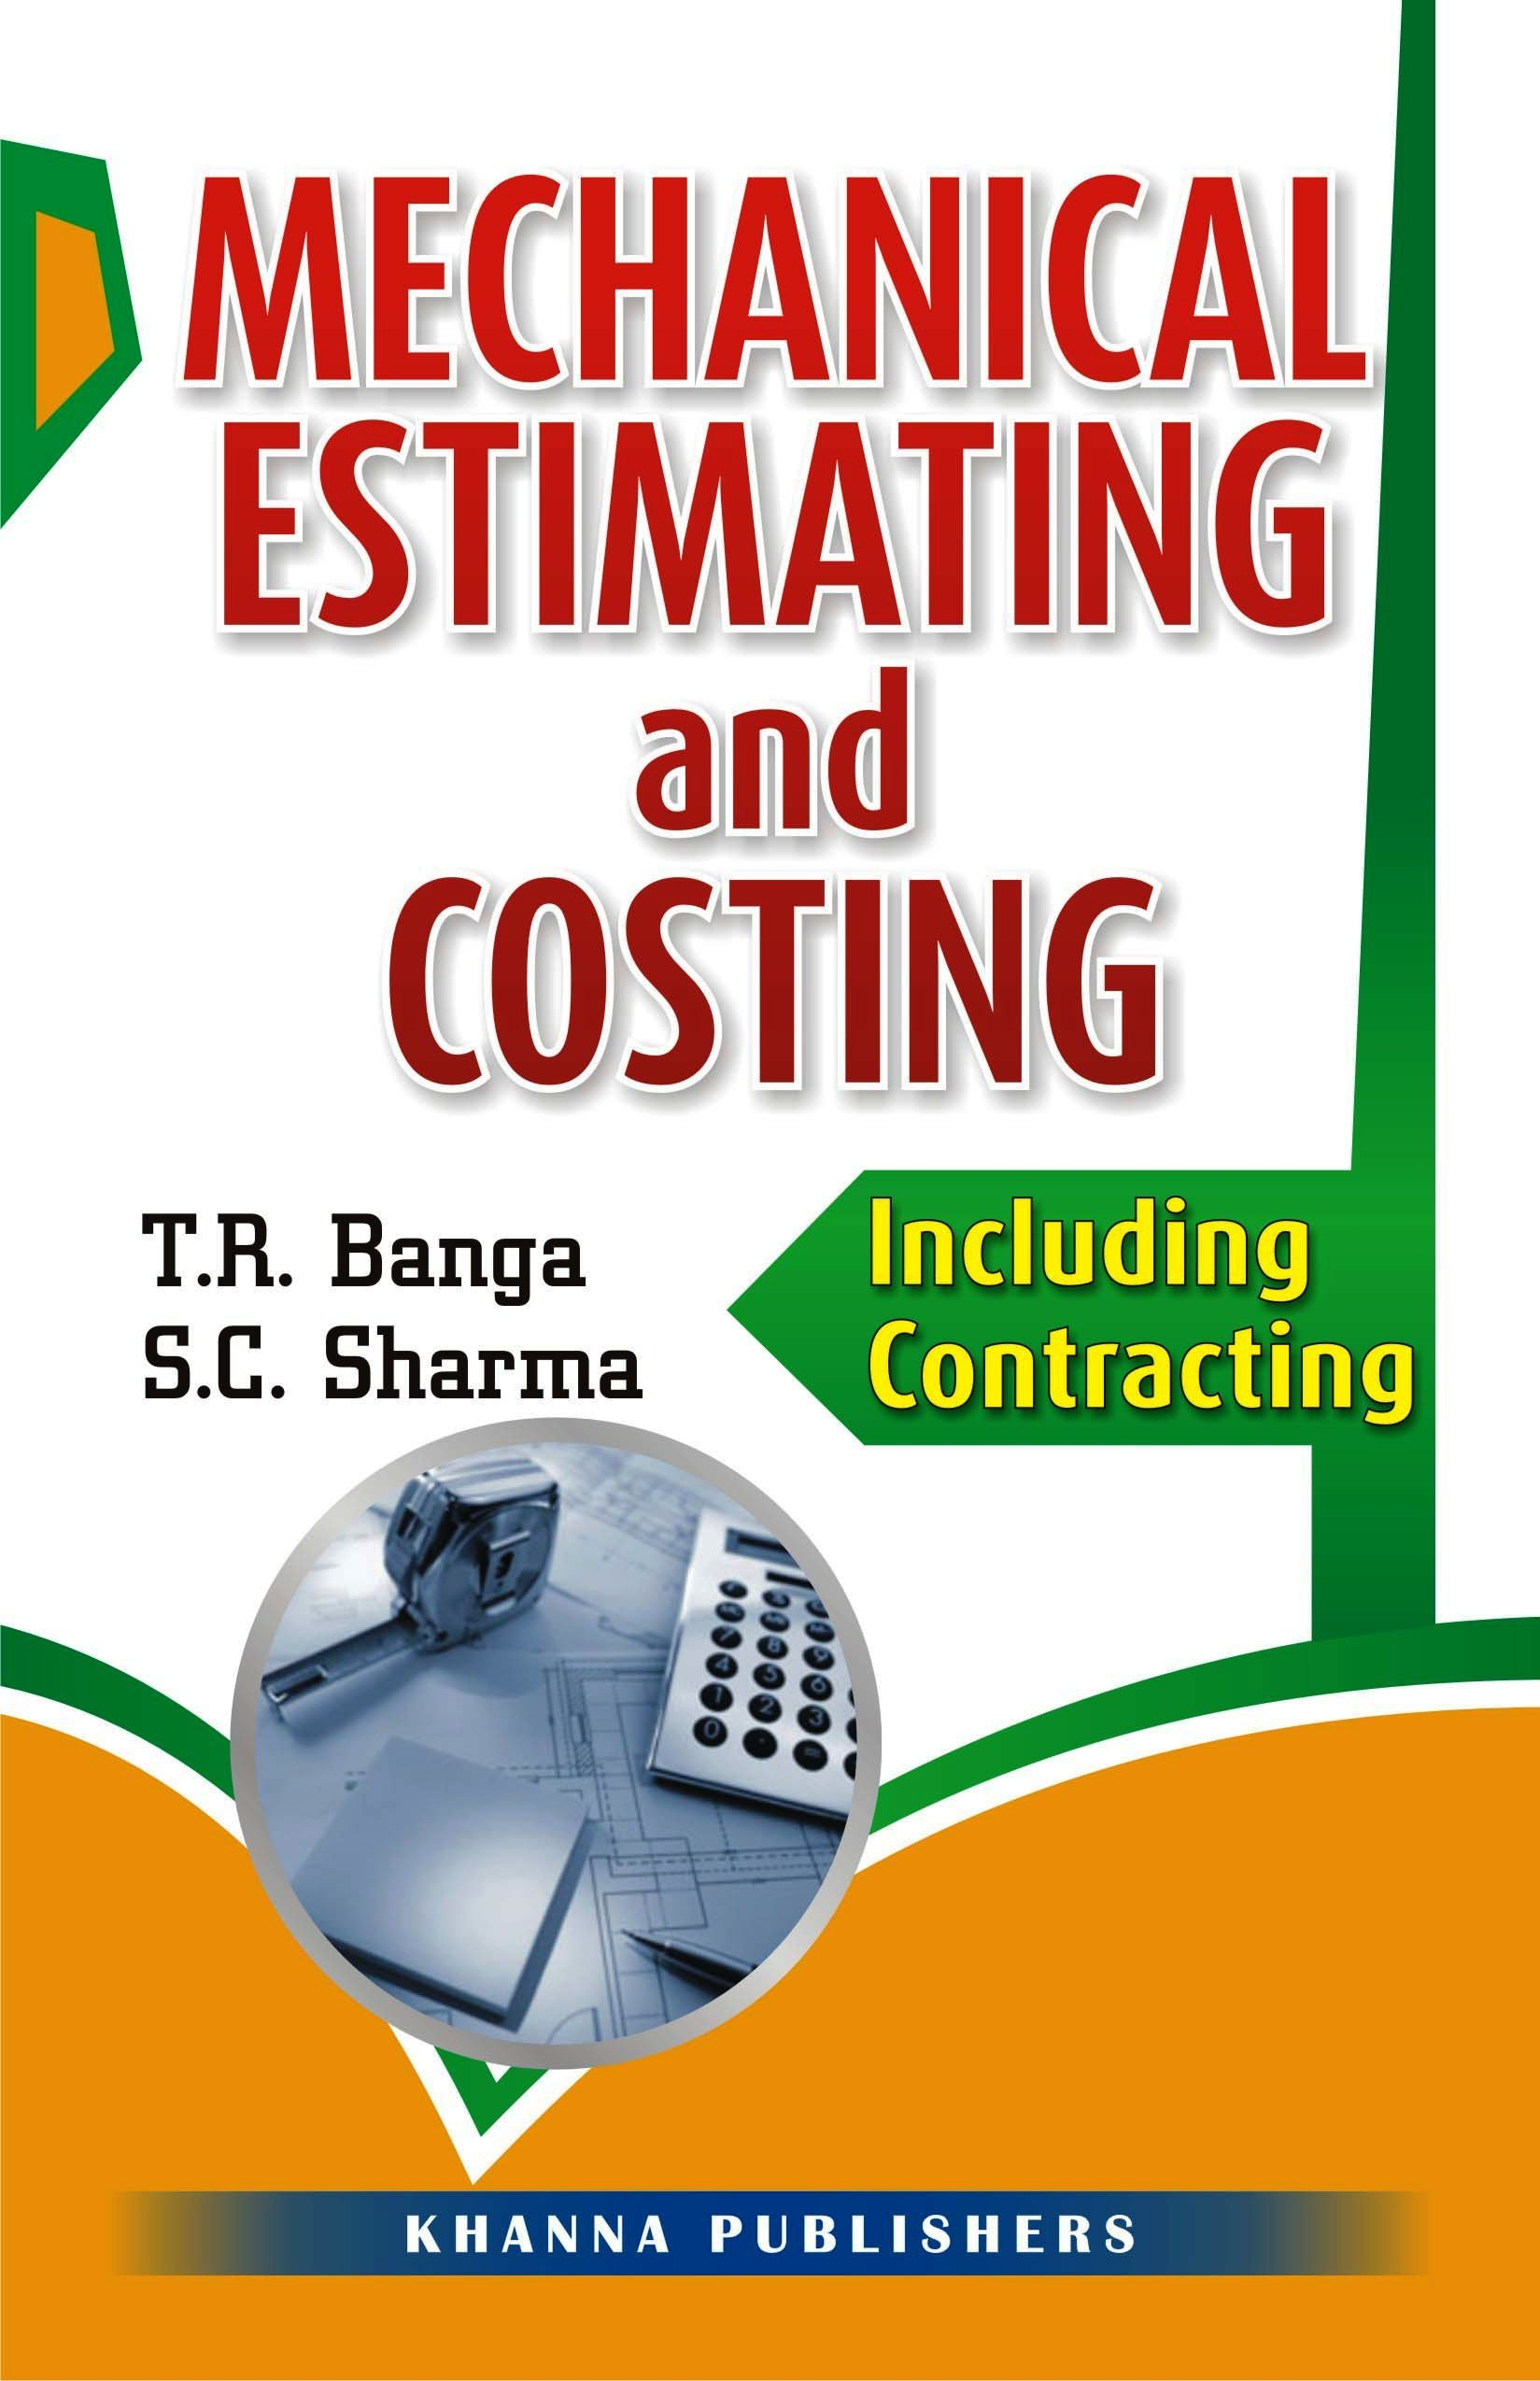 Mechanical Estimating And Costing-Including Contracting